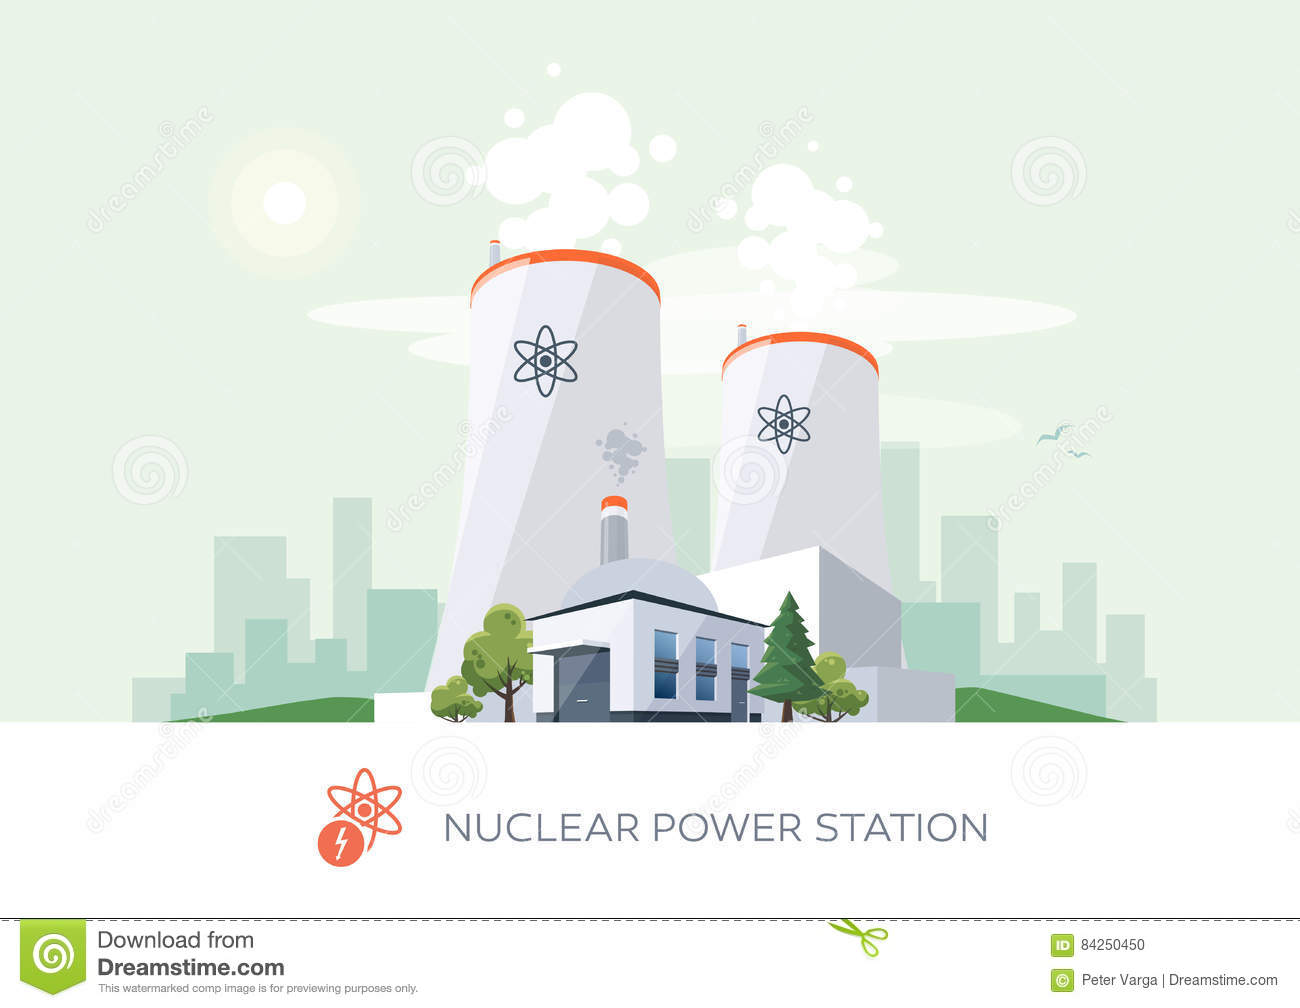 Nuclear Power Plant Stock Vector Illustration Of Pollution 84250450